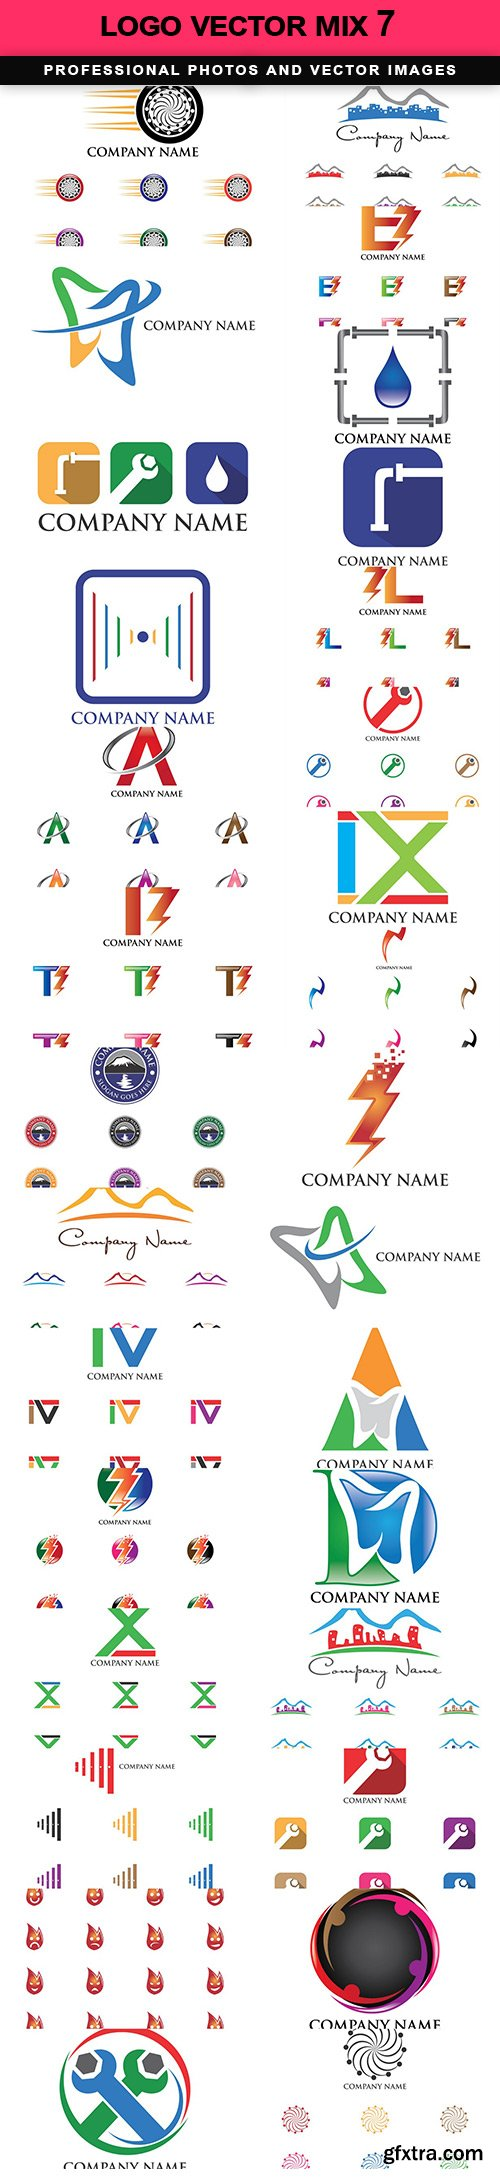 logo vector mix 7